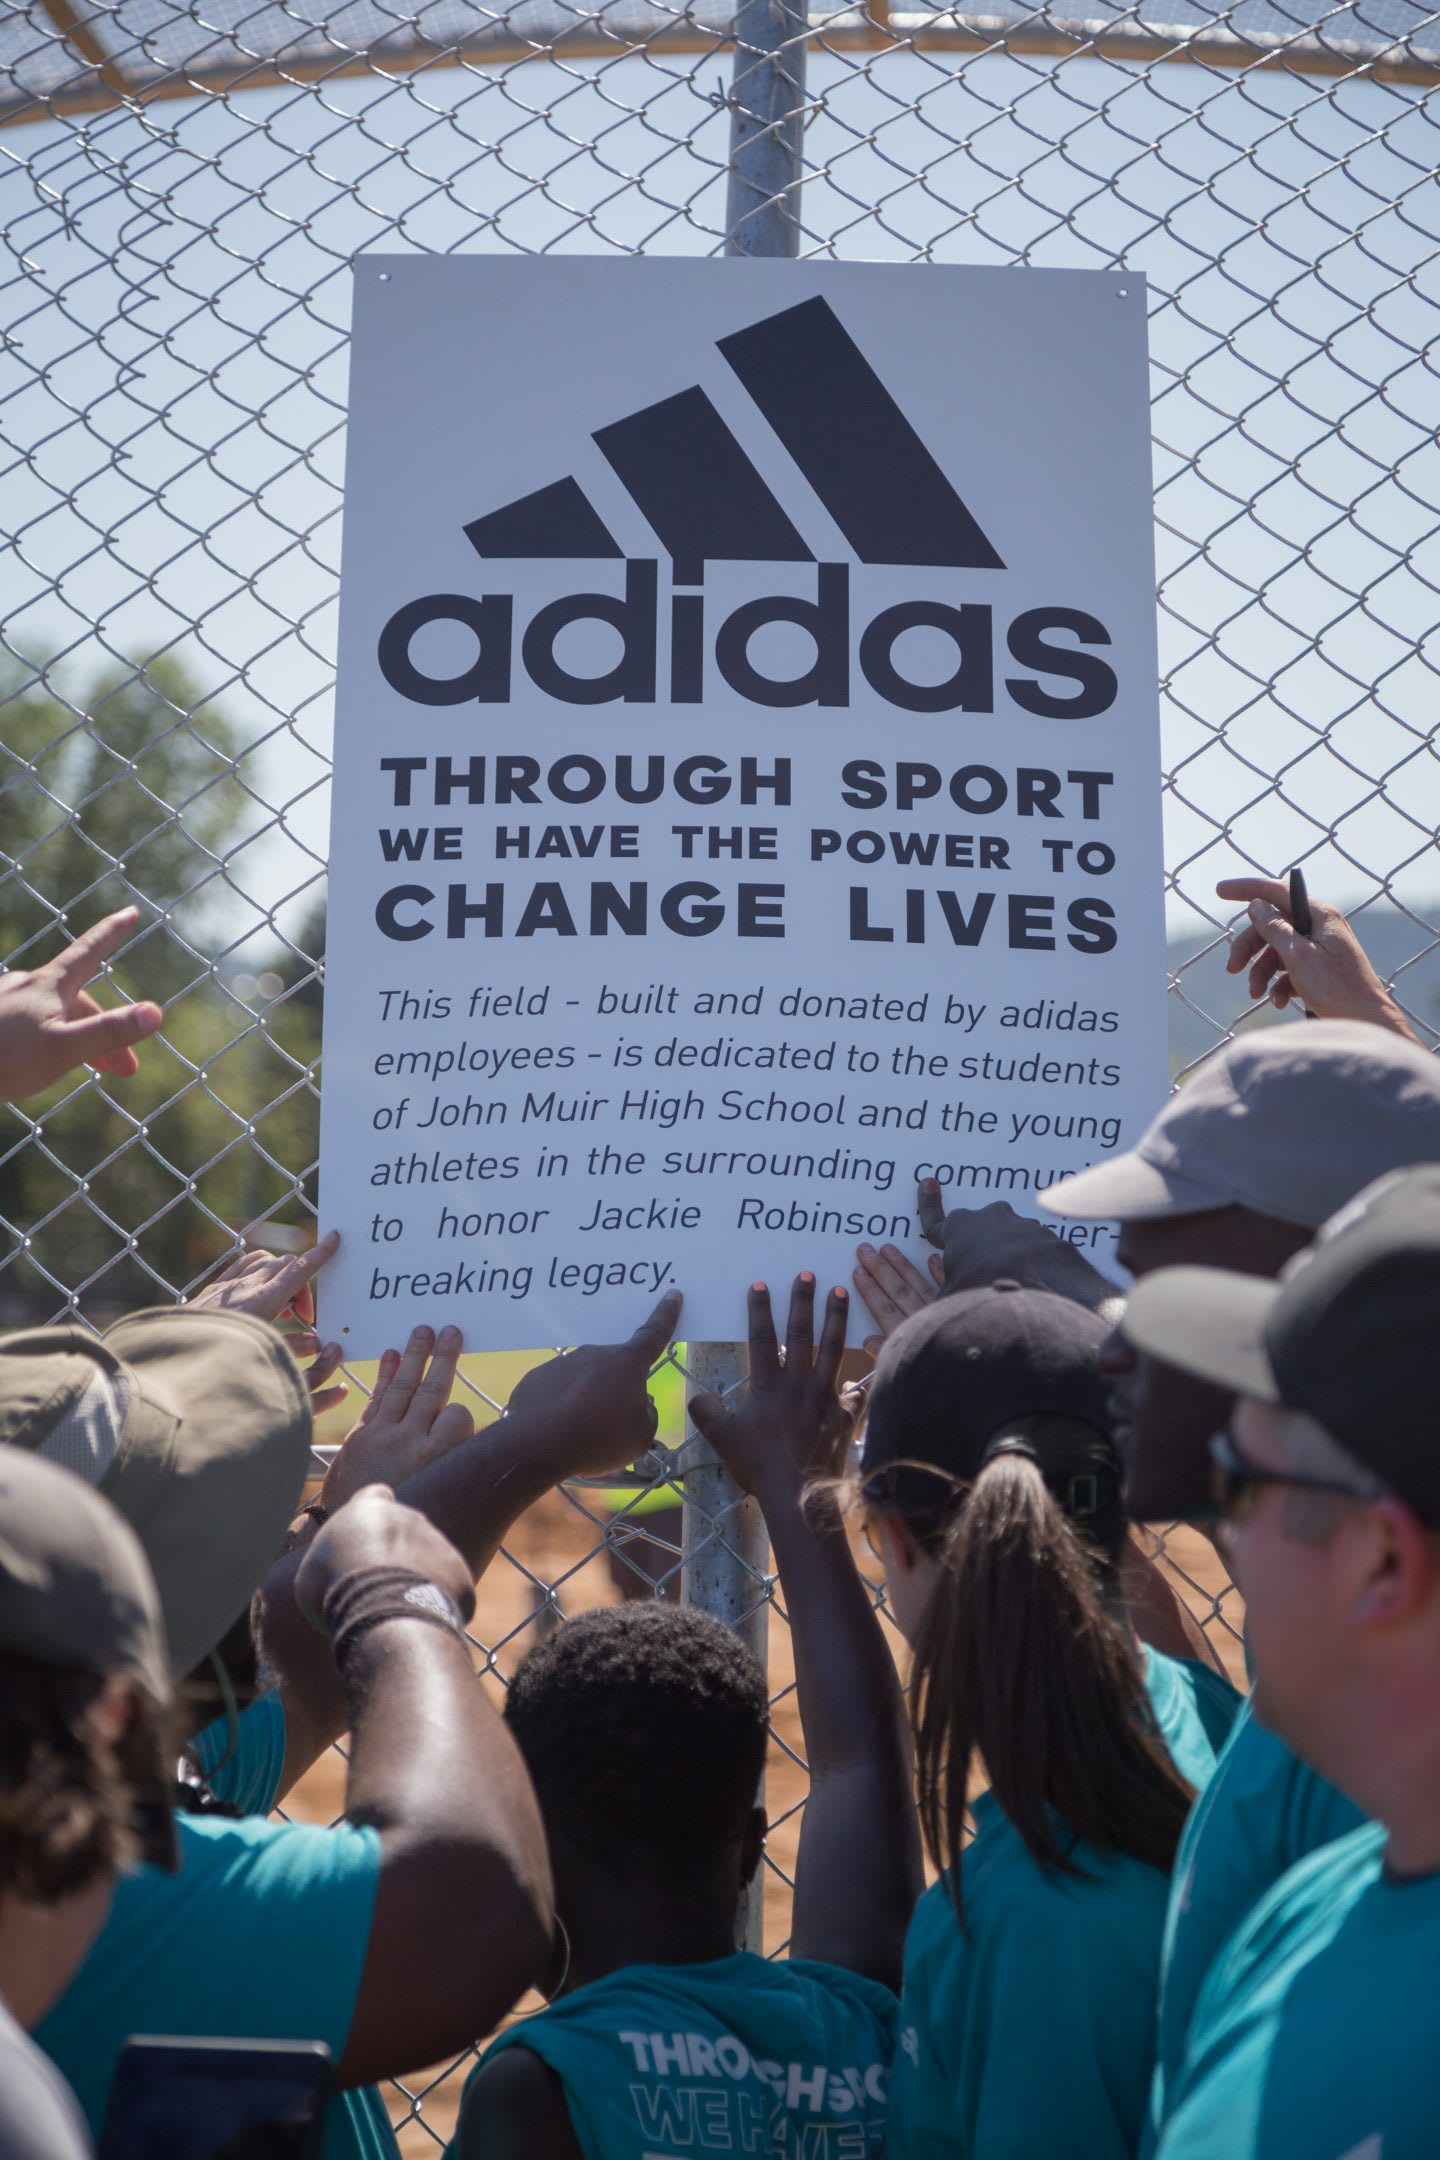 adidas-employees-beneficence-John-Muir-High-School-Jackie-Robinson-Baseball-Field-construction-through-sport-we-have-the-power-to-change-lives